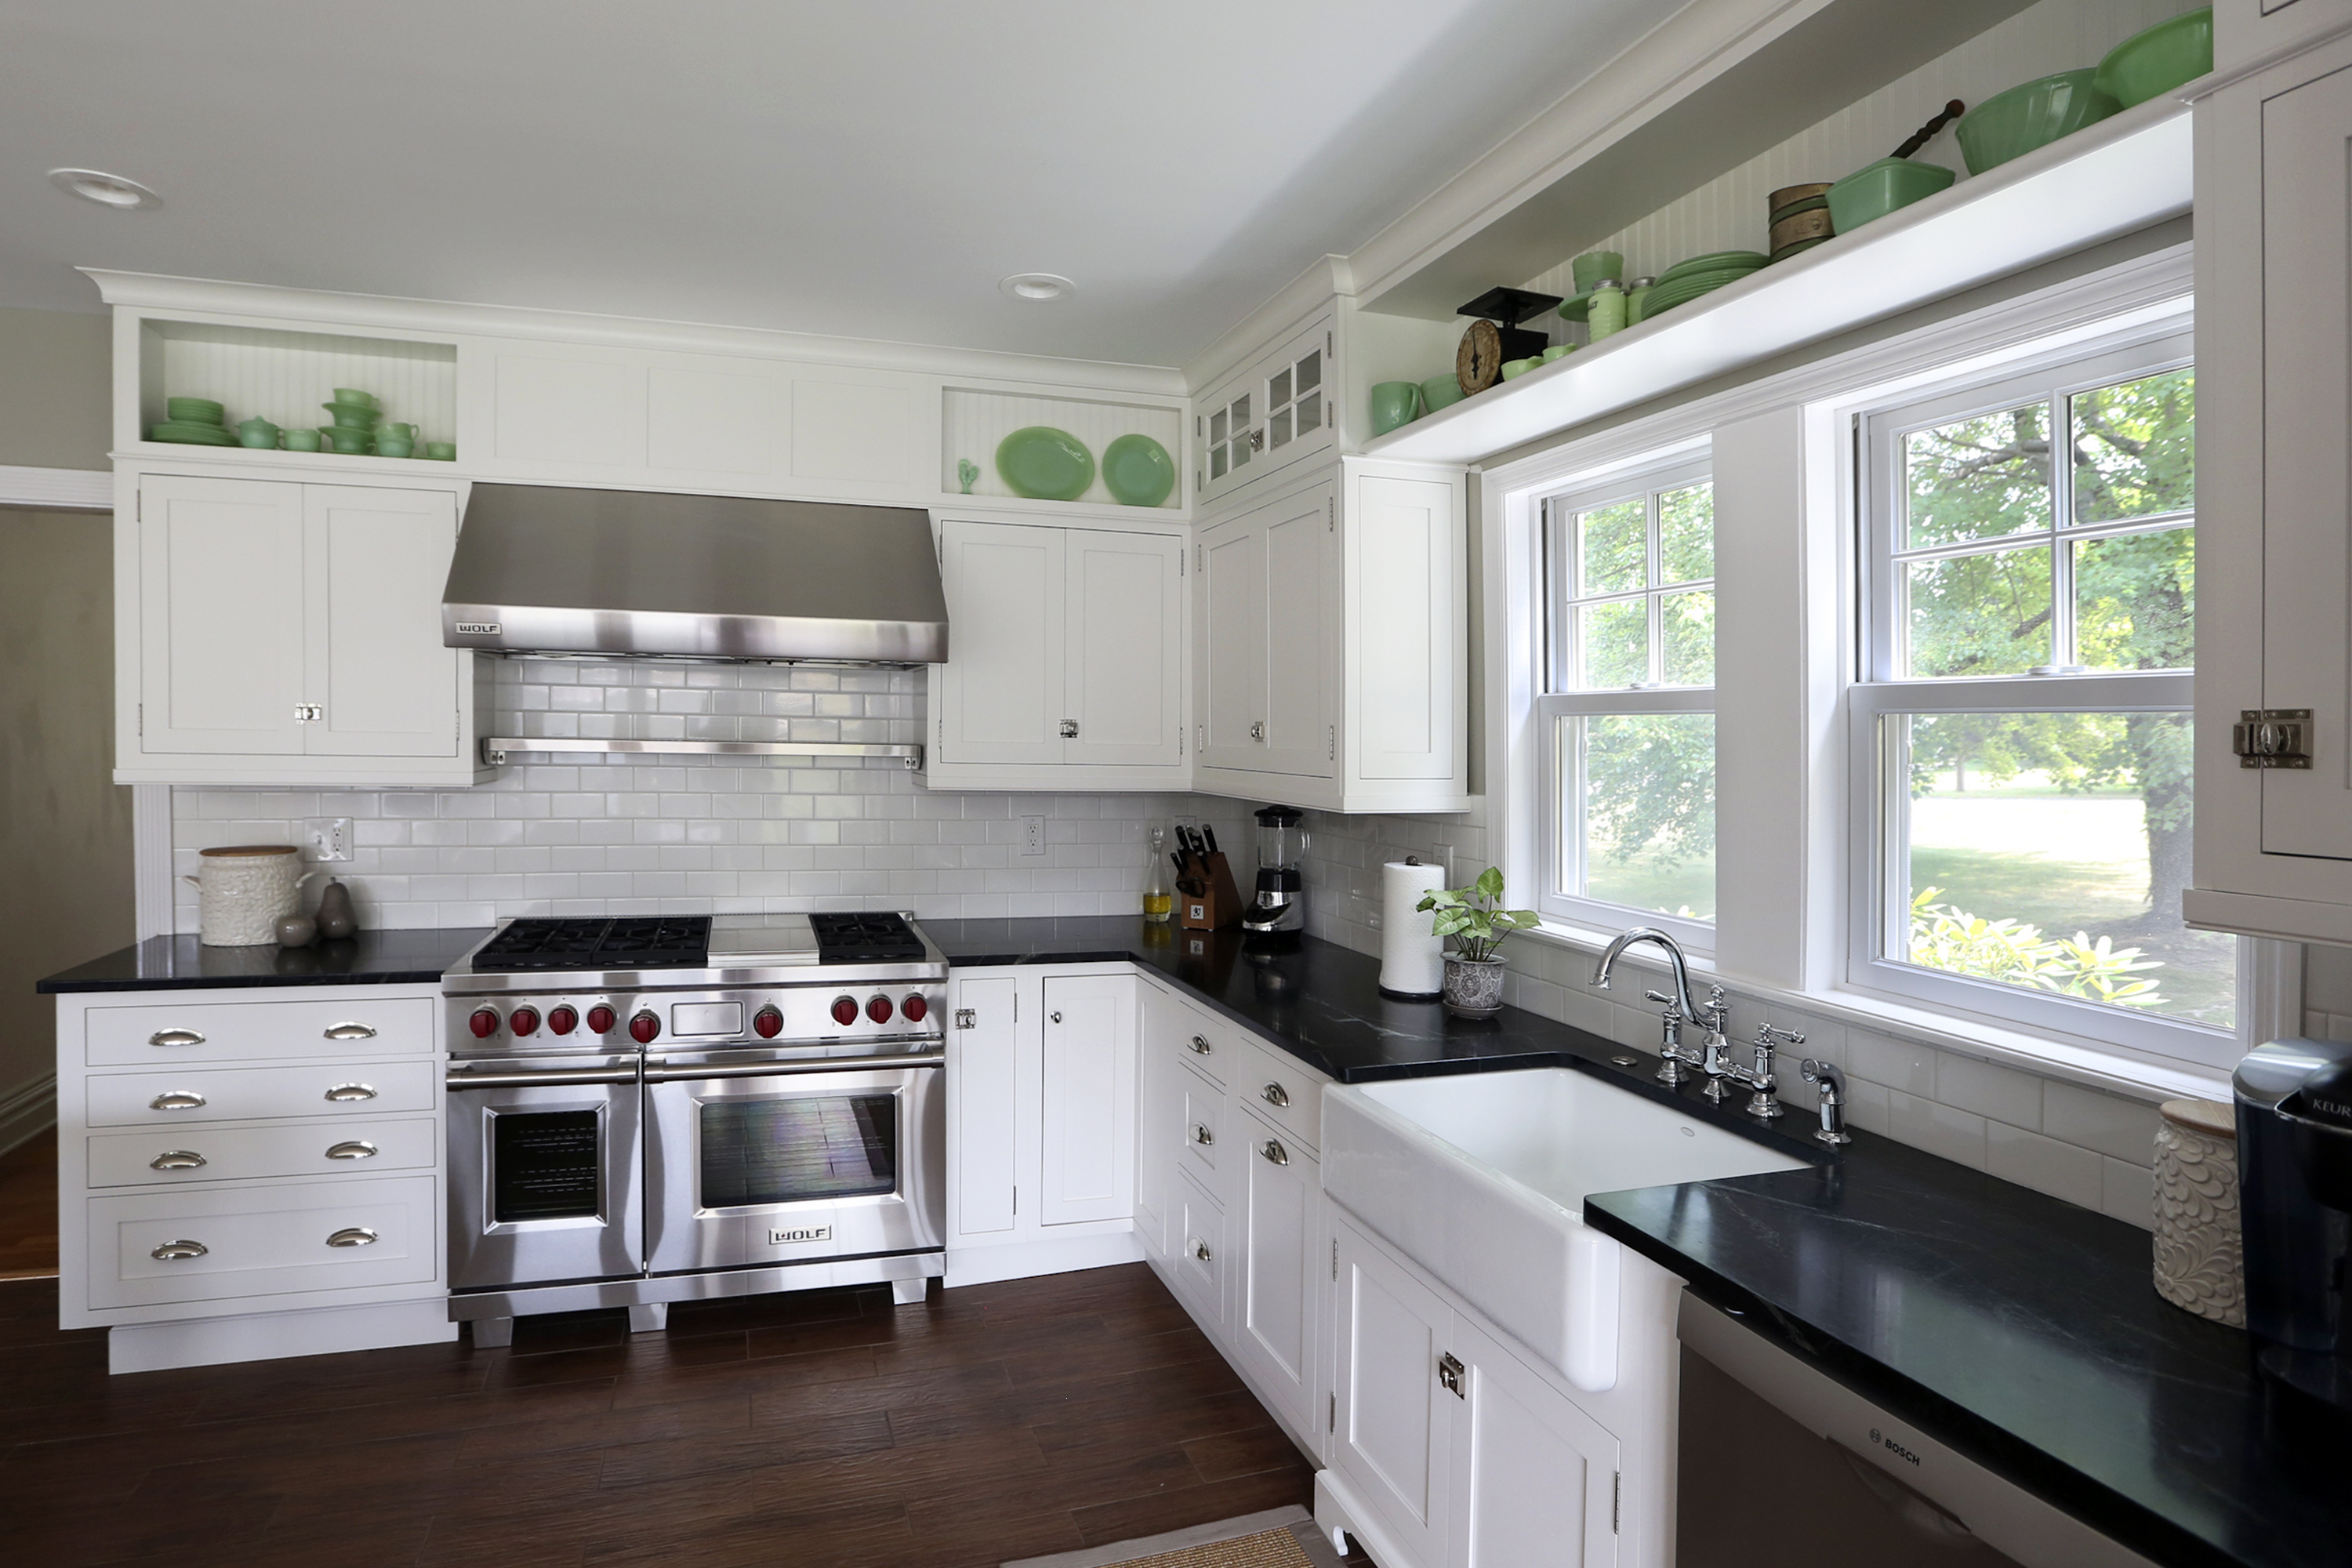 kitchen-small-modern-l-shaped-kitchen-design-ideas-with-window-treatment-ideas-with-granite-countertop-and-kitchen-sink-and-faucet-also-hood-range-kitchen-l-shaped-design-kitchen-ideas